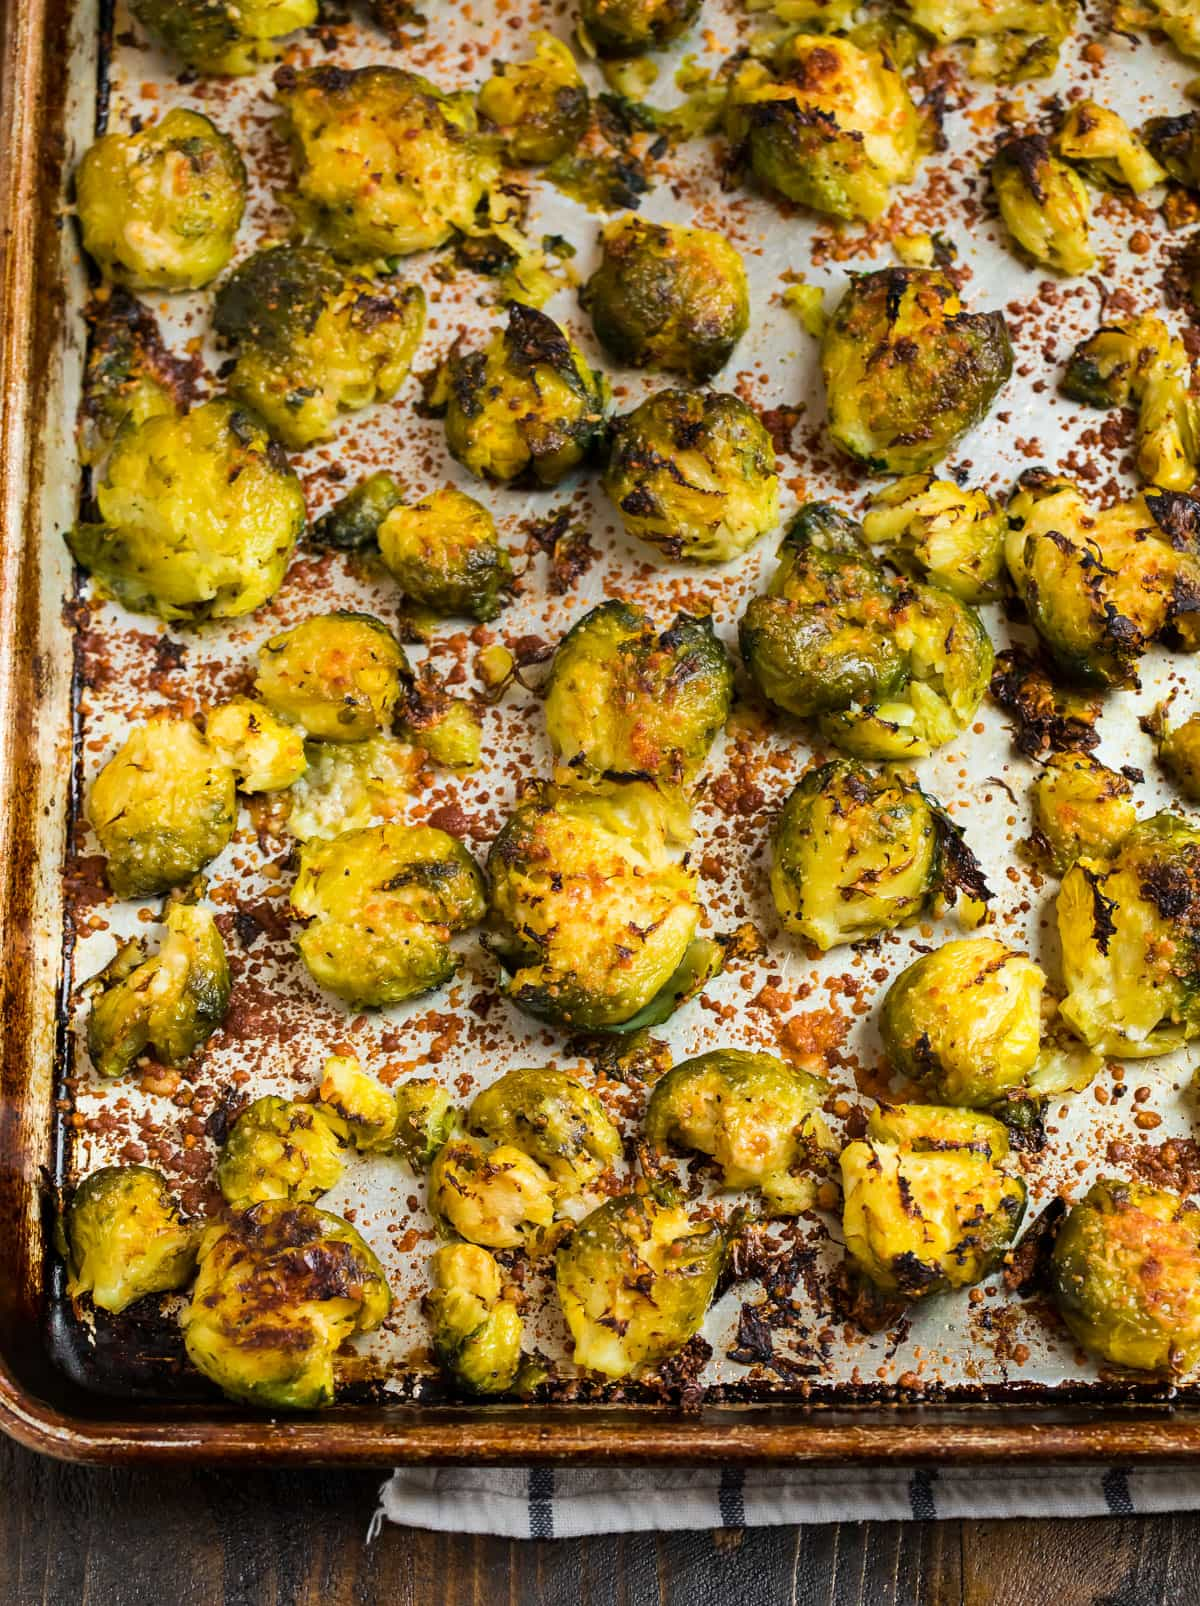 Crispy smashed Brussels sprouts on a baking sheet with Parmesan